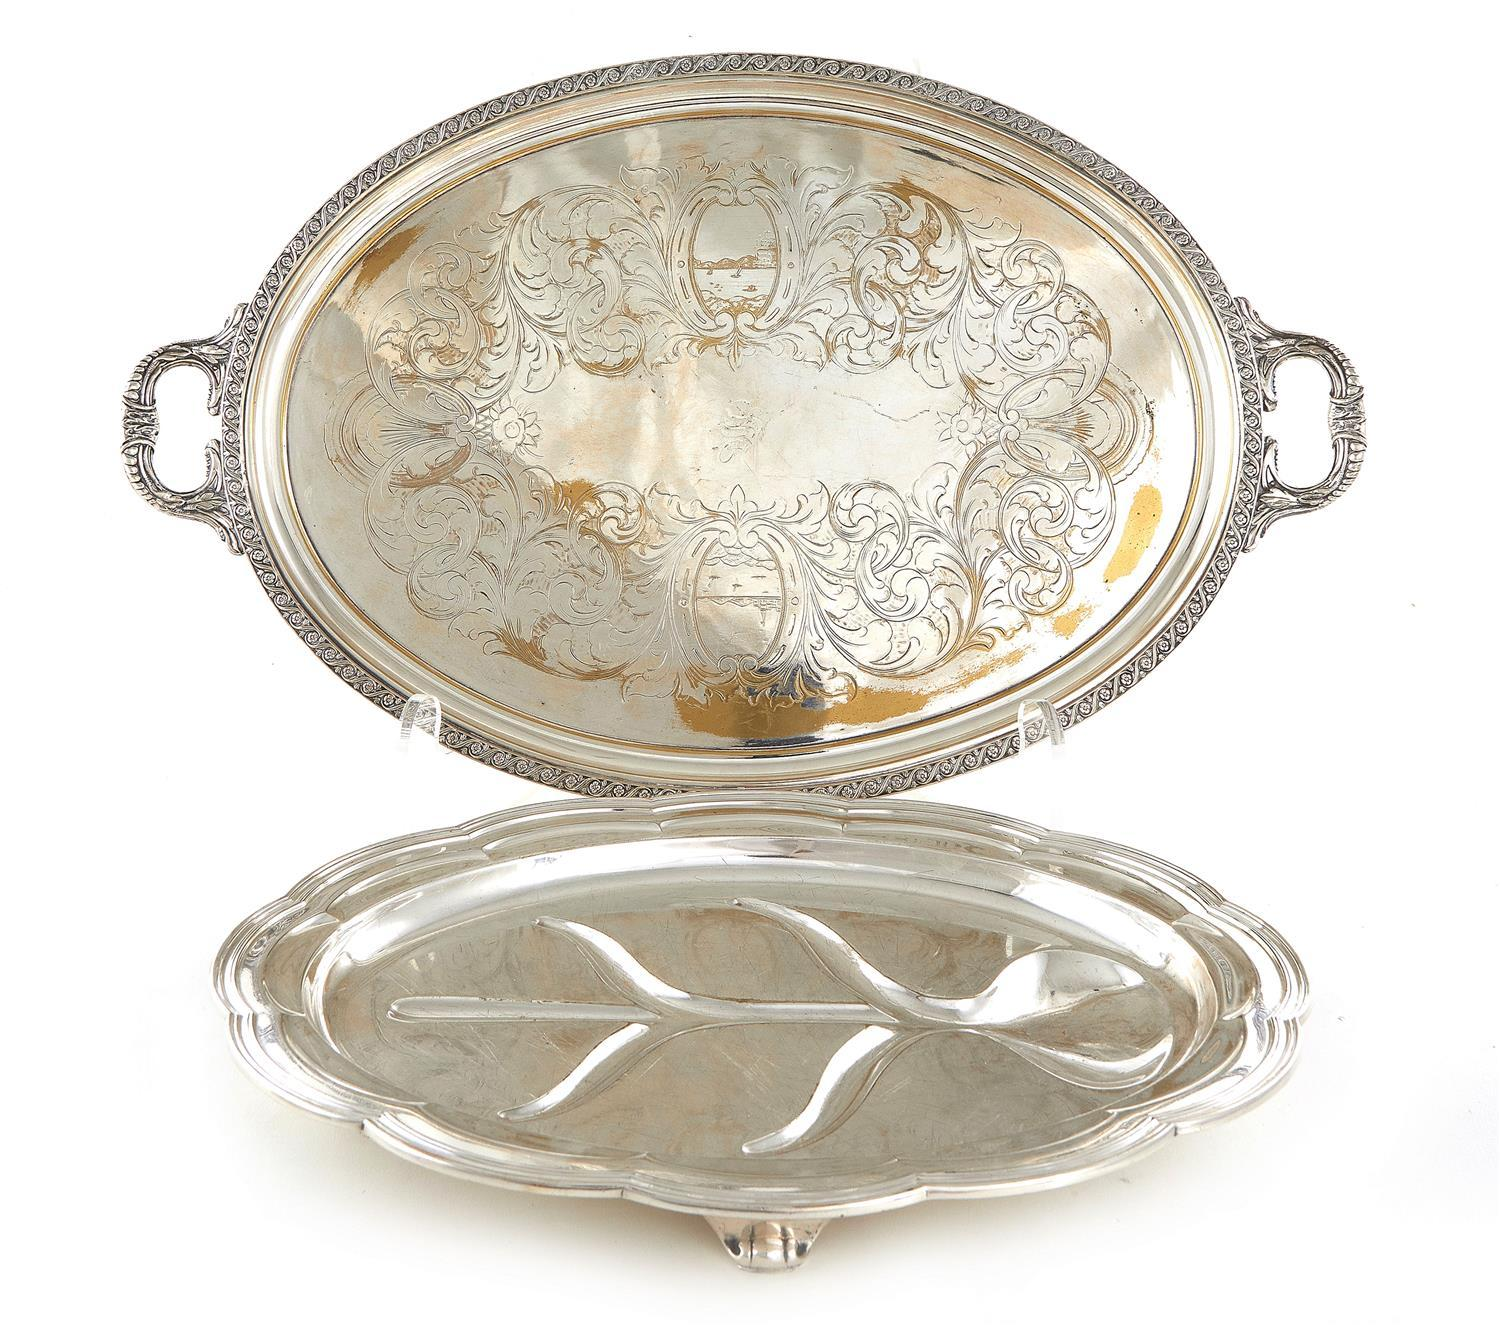 Tiffany & Co silverplate well-and-tree platter, and American waiter (2pcs)